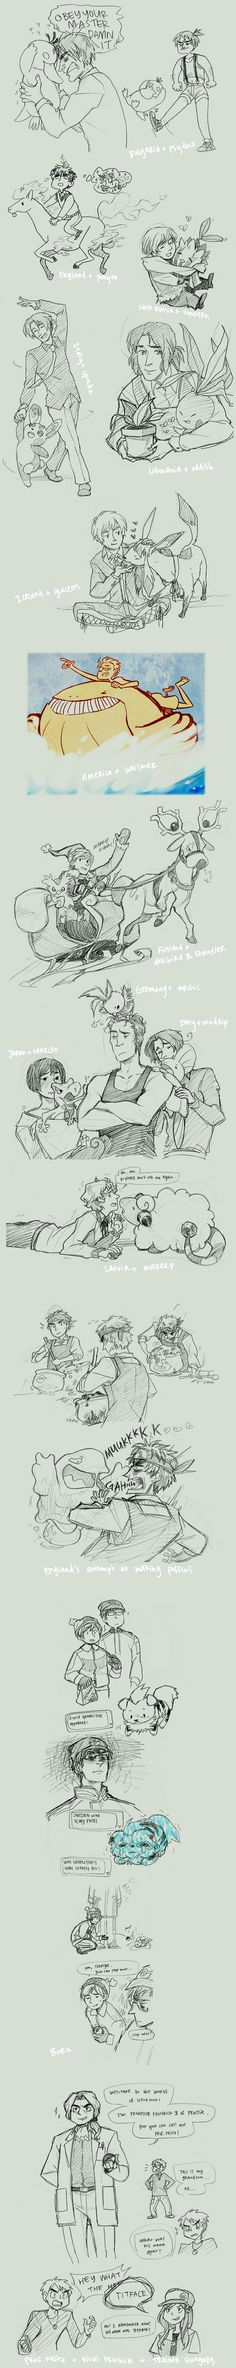 hetaliamon by Blue-Fox on deviantART. Hetalia X Pokemon..this is awesome!<<< The last part, though! Lol poor Prussia